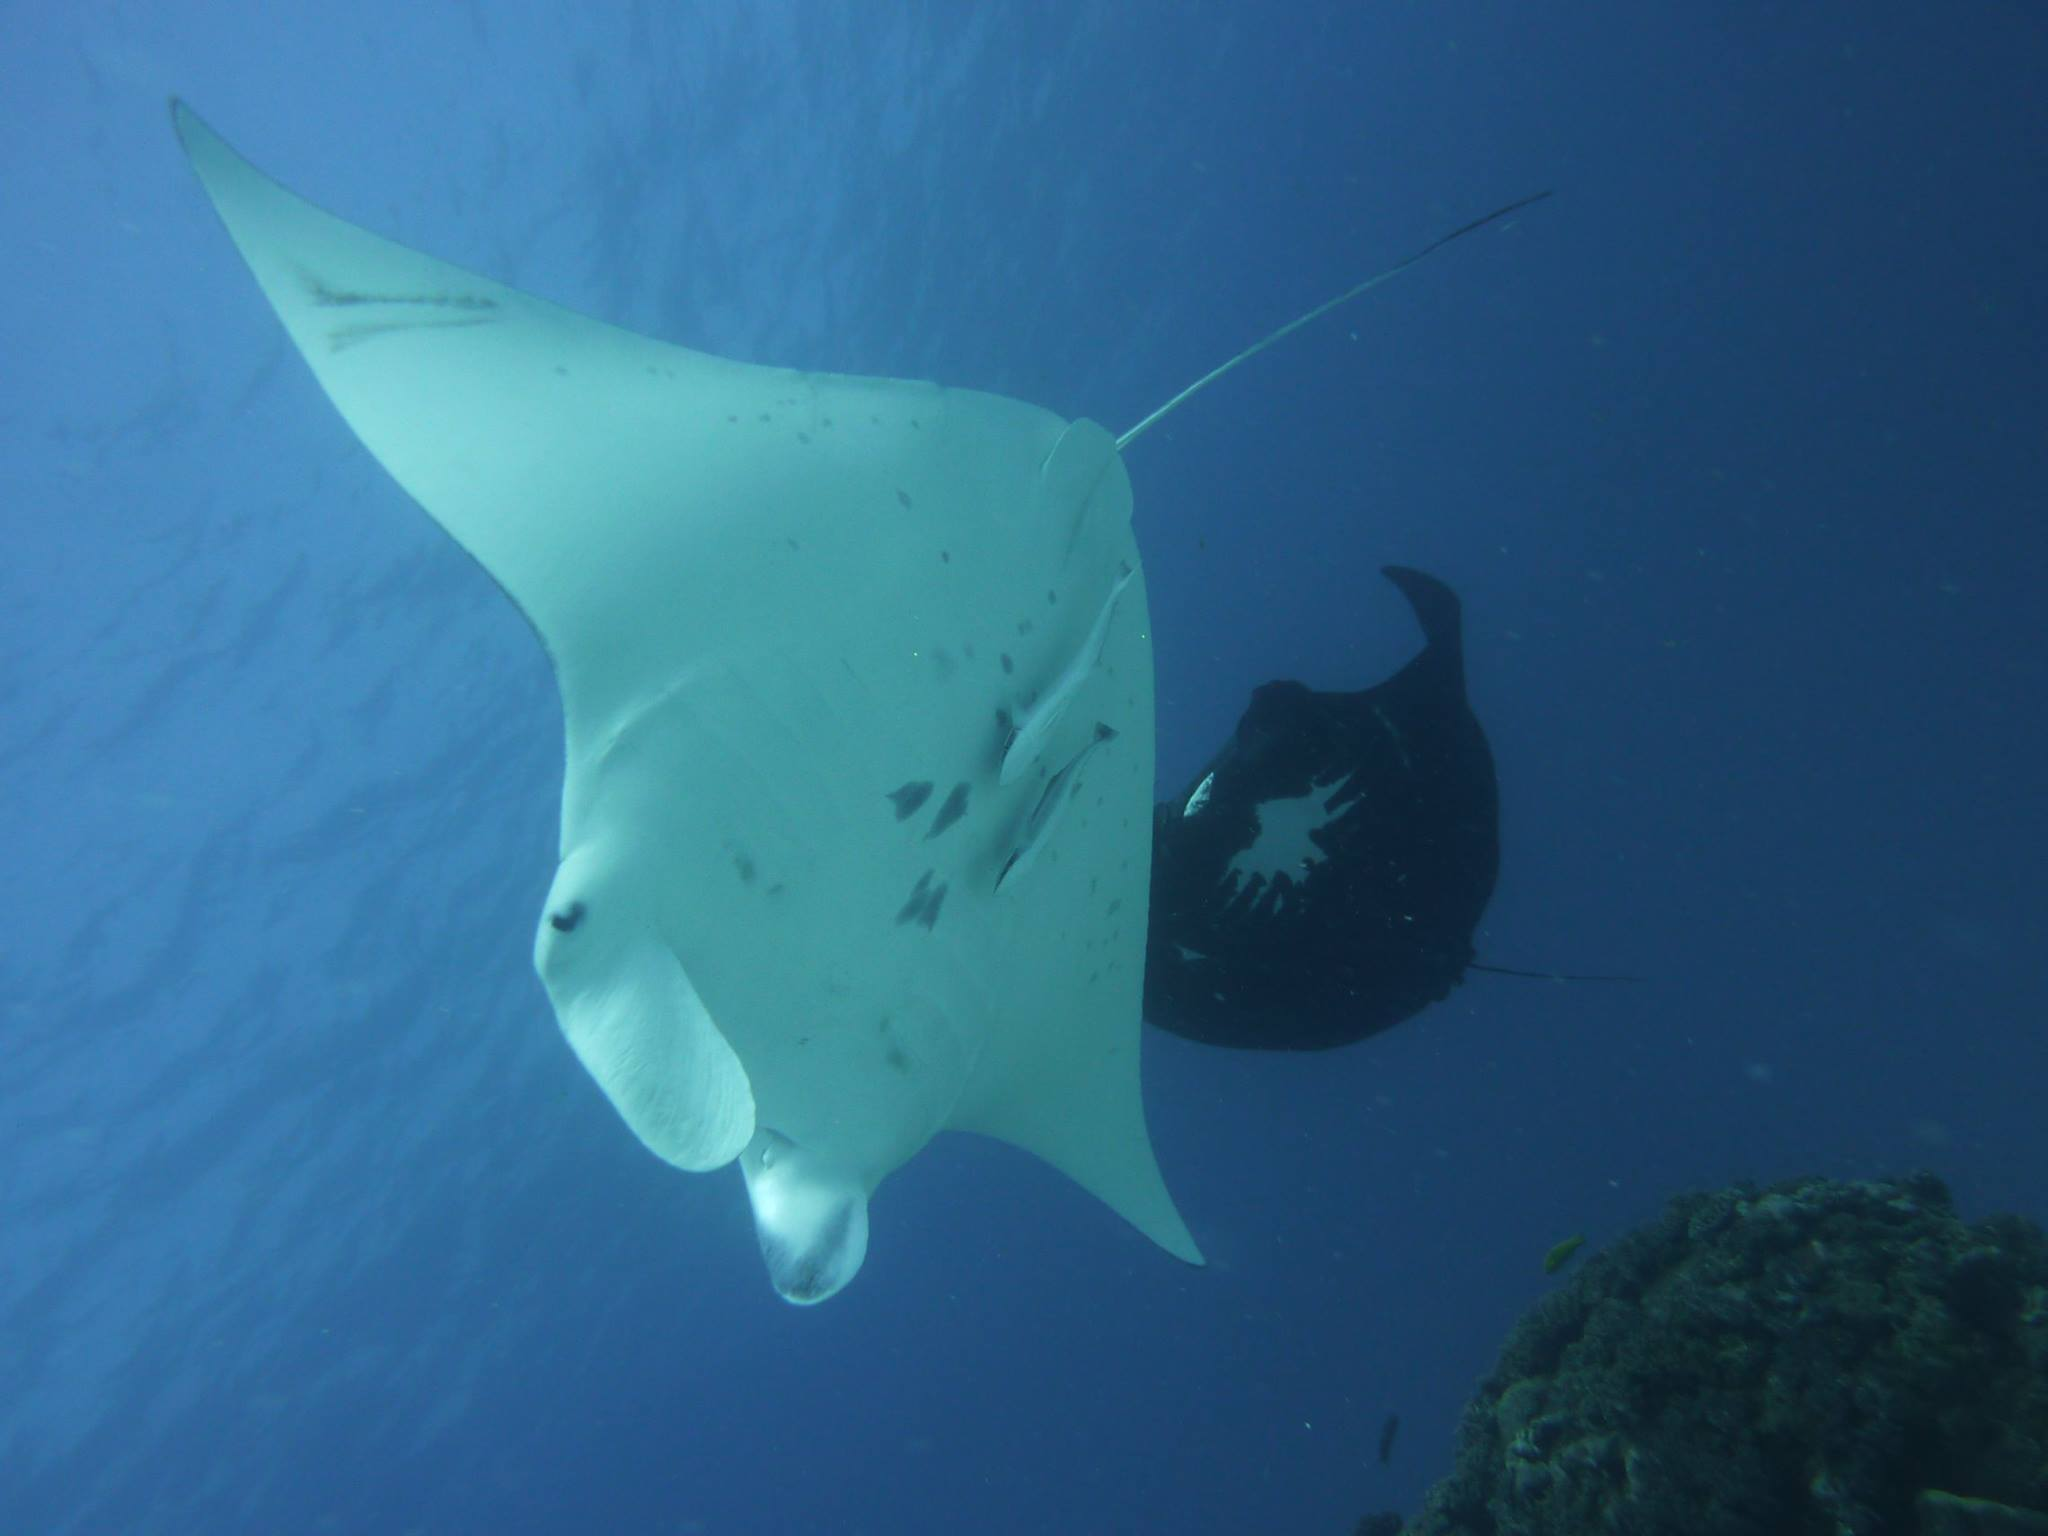 Taurus can be seen in the background of this picture. A great underbelly ID shot of the Mantas.